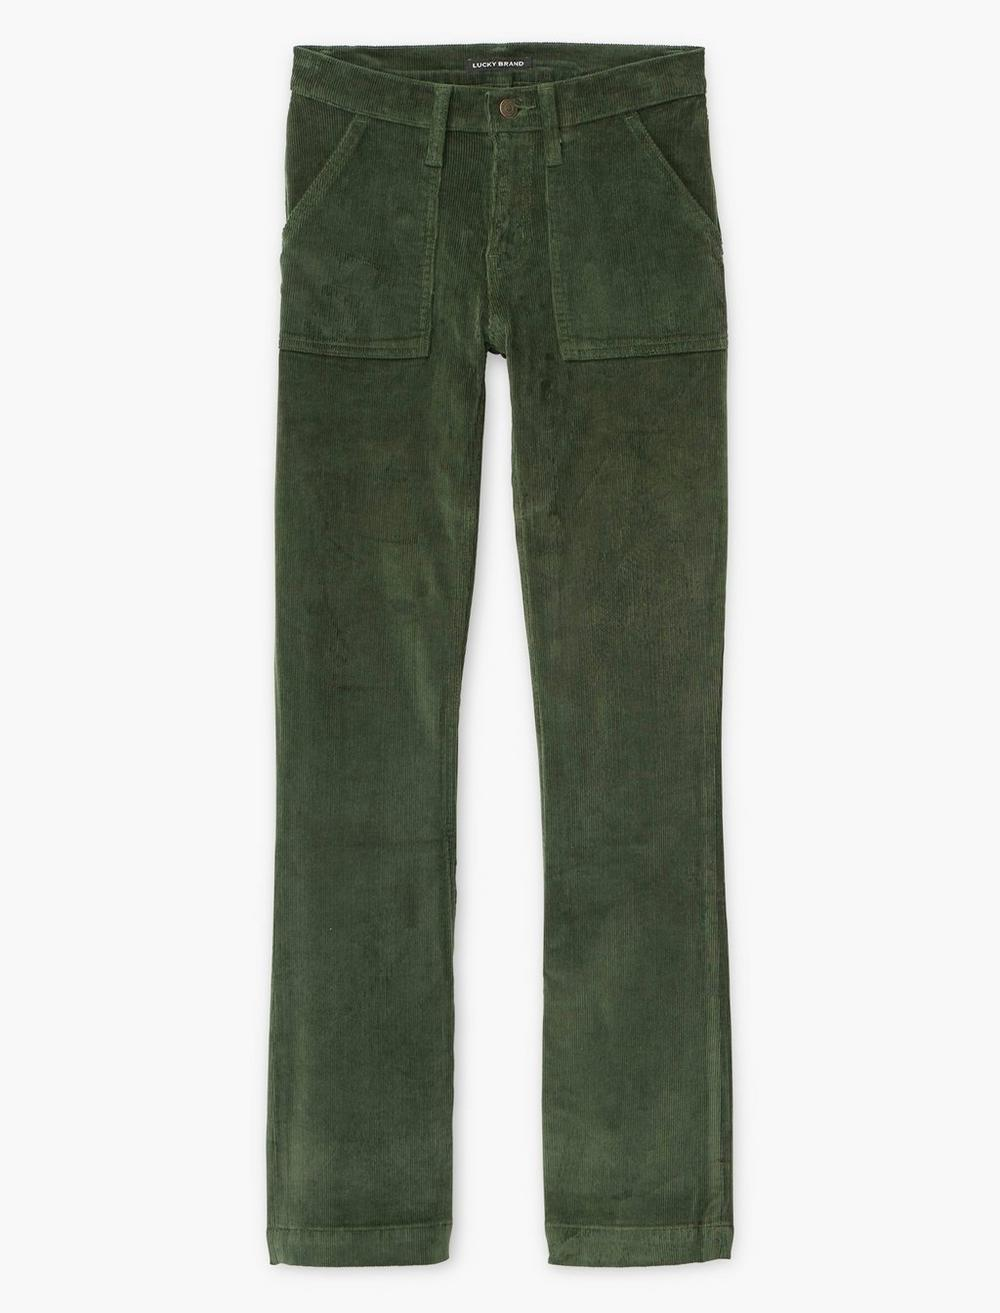 MID RISE AVA BOOT JEAN, image 6